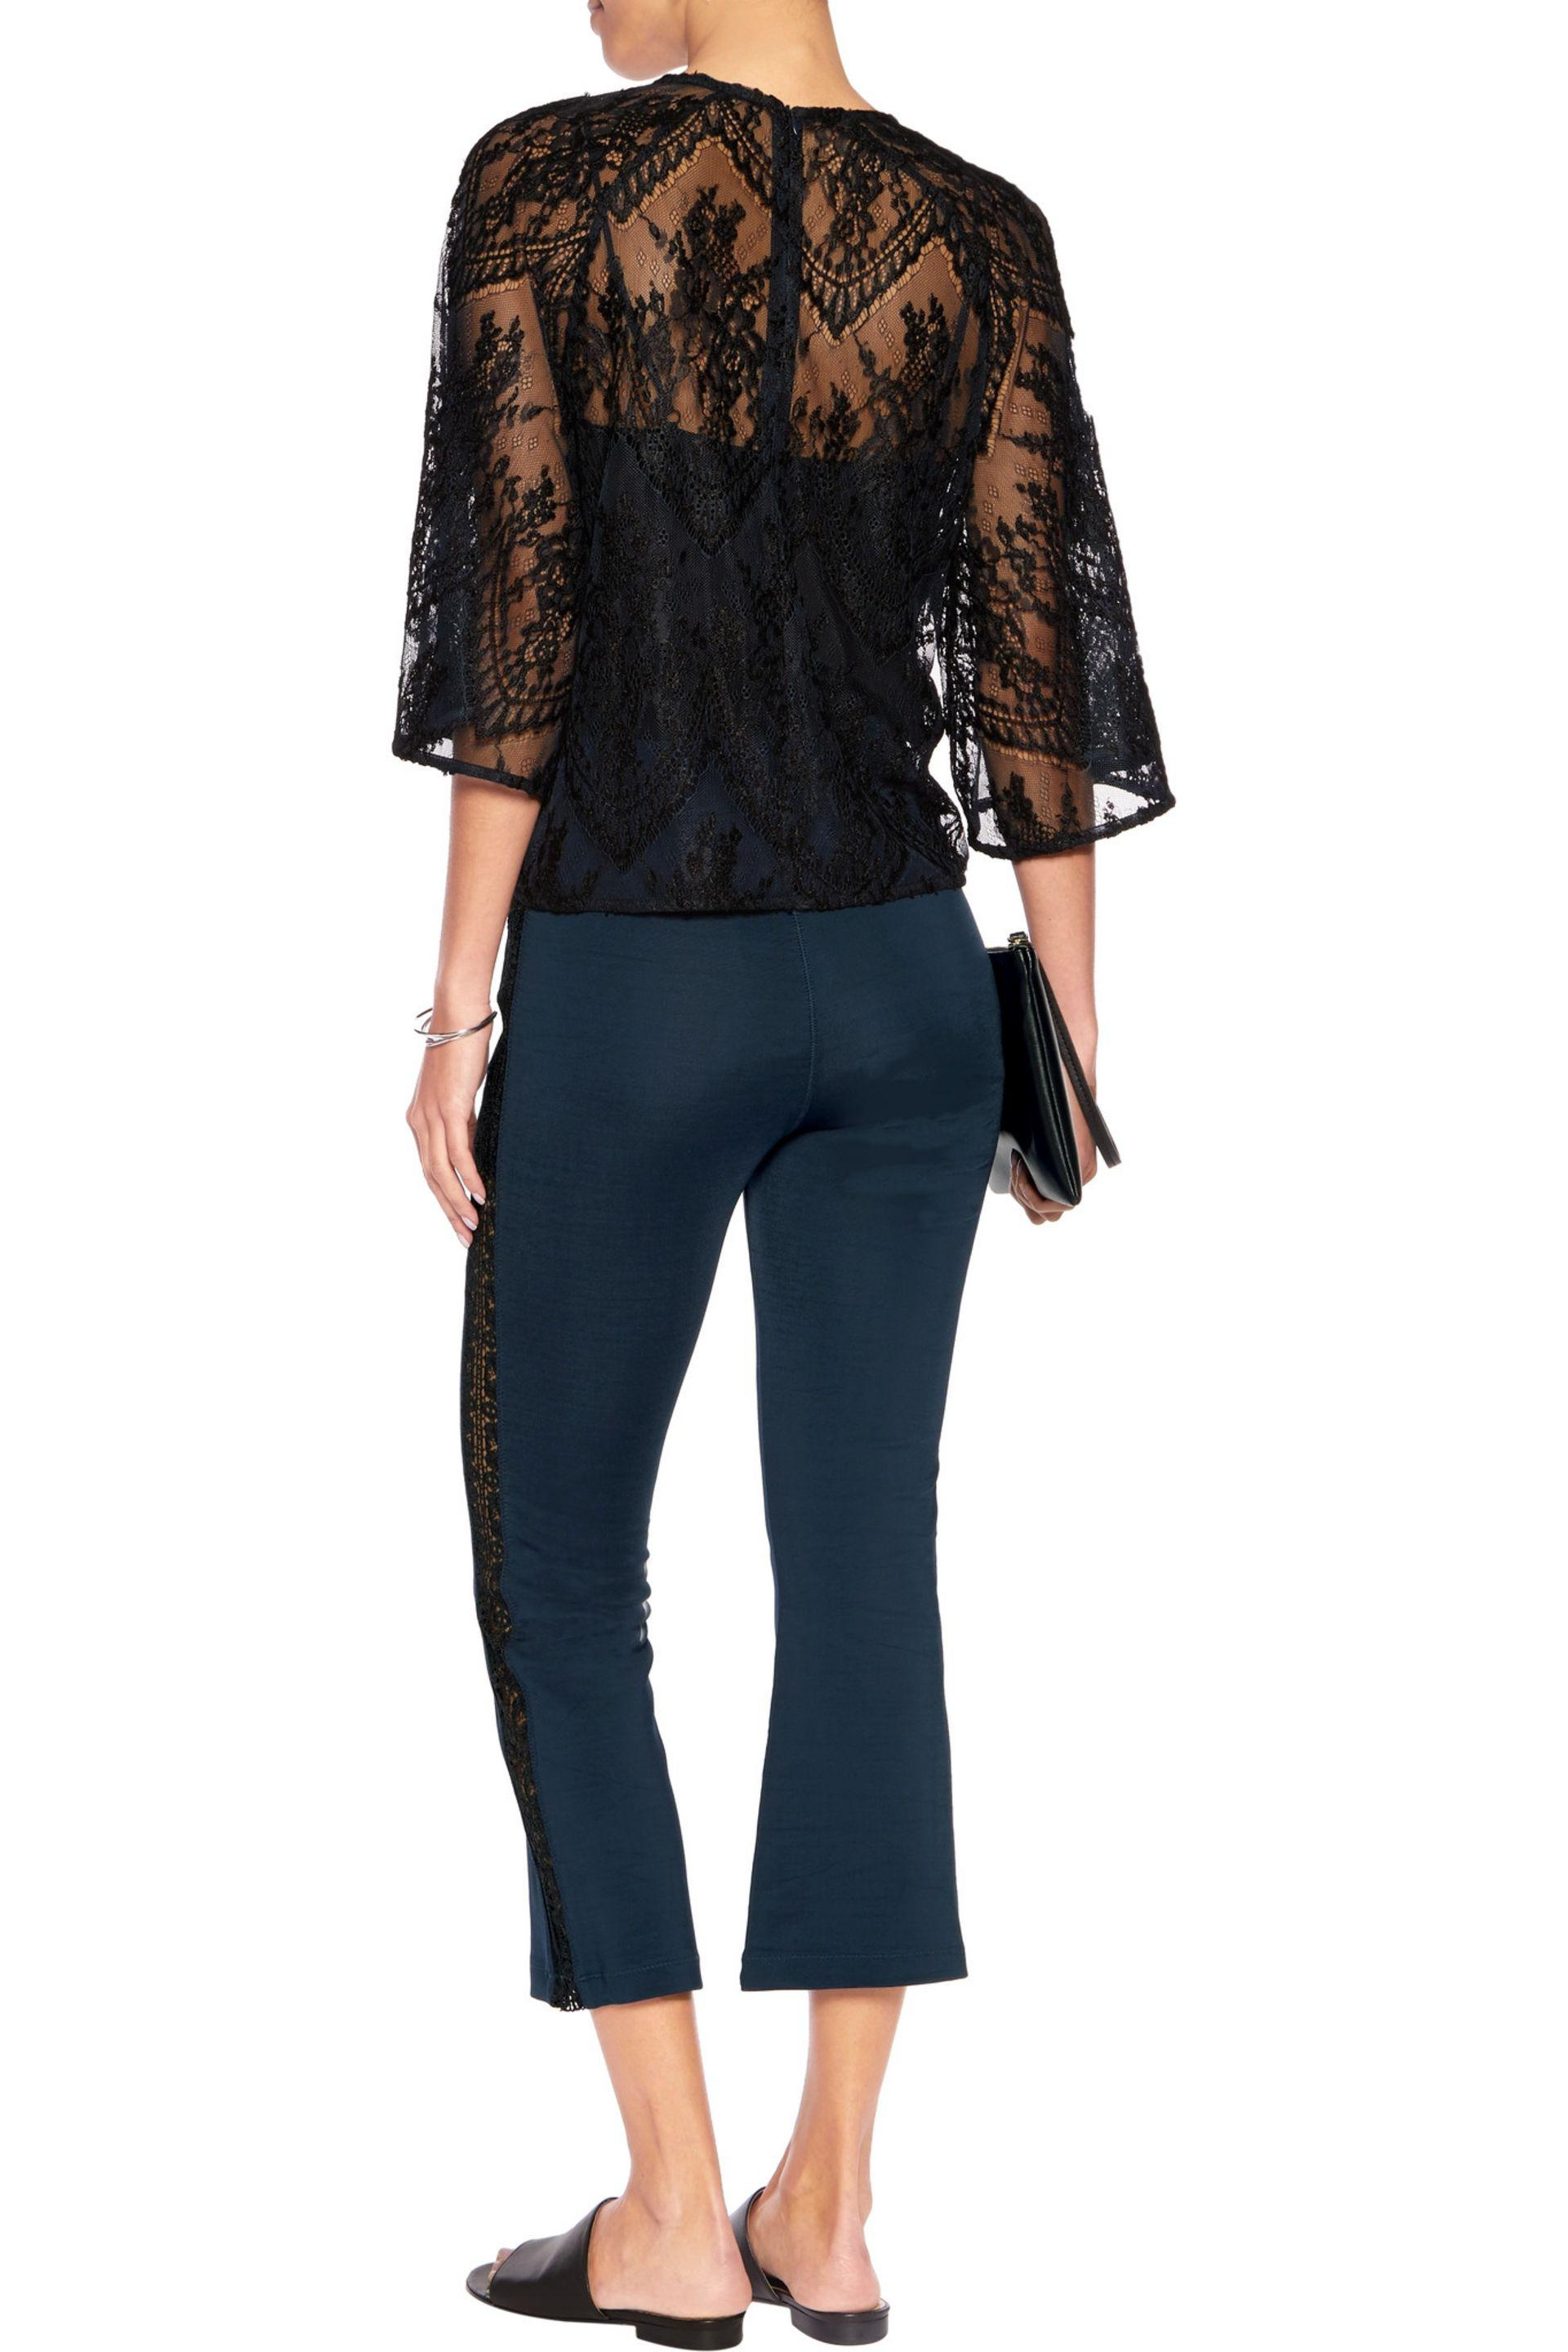 Ganni - Blue Rogers Cropped Lace-trimmed Stretch-jersey Bootcut Pants -  Lyst. View Fullscreen